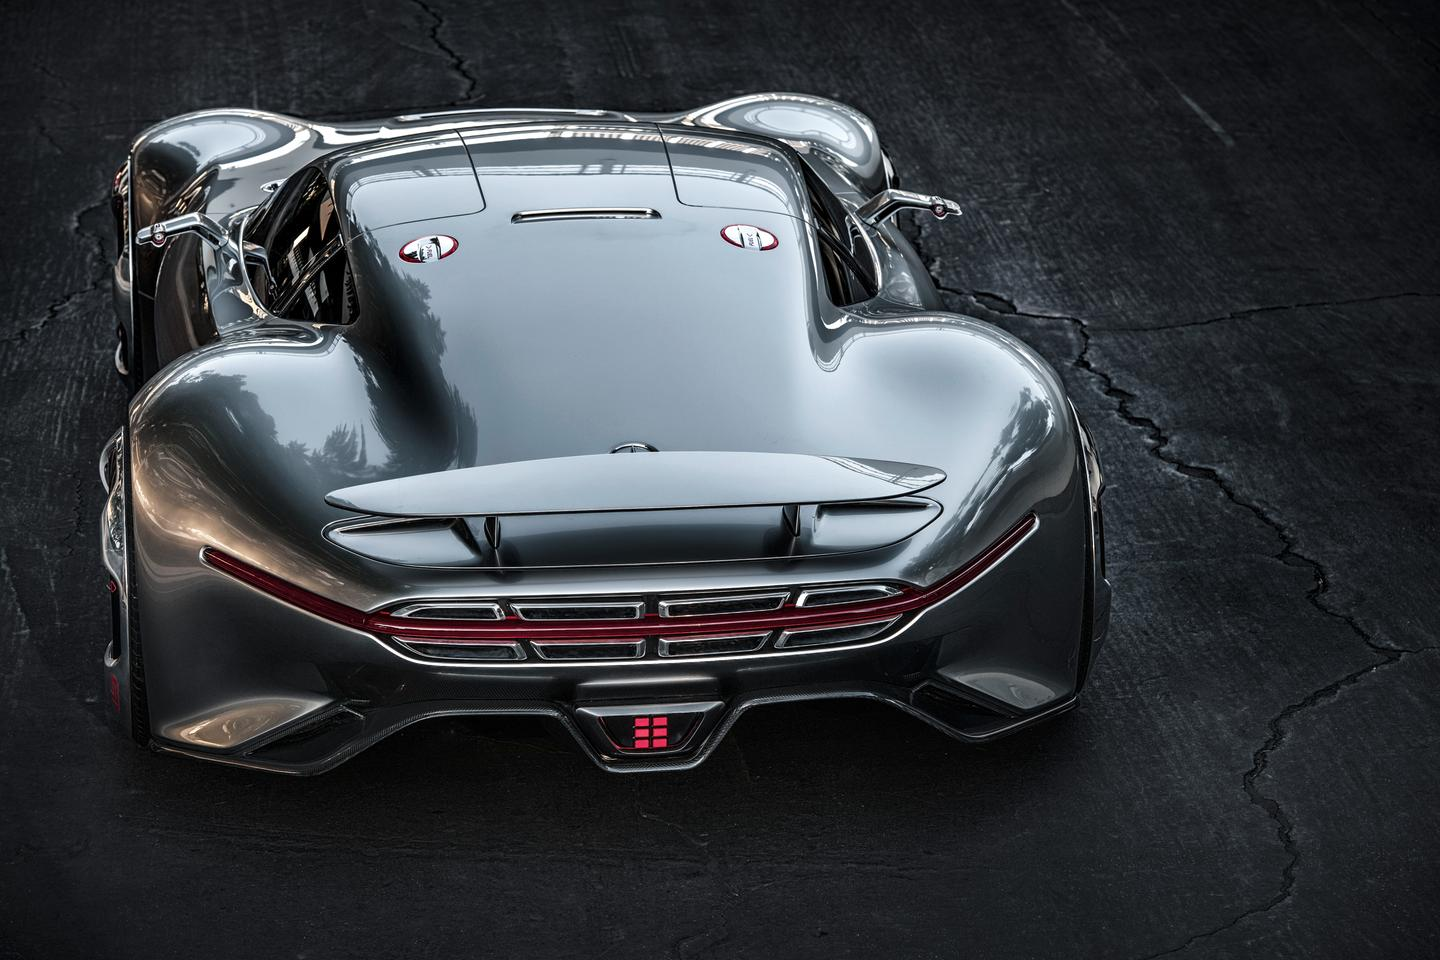 Mercedes-AMG sound team created a distinct, performance bent exhaust note for the eight narrow exhaust vents integrated into the Vision GT's oversized rear end